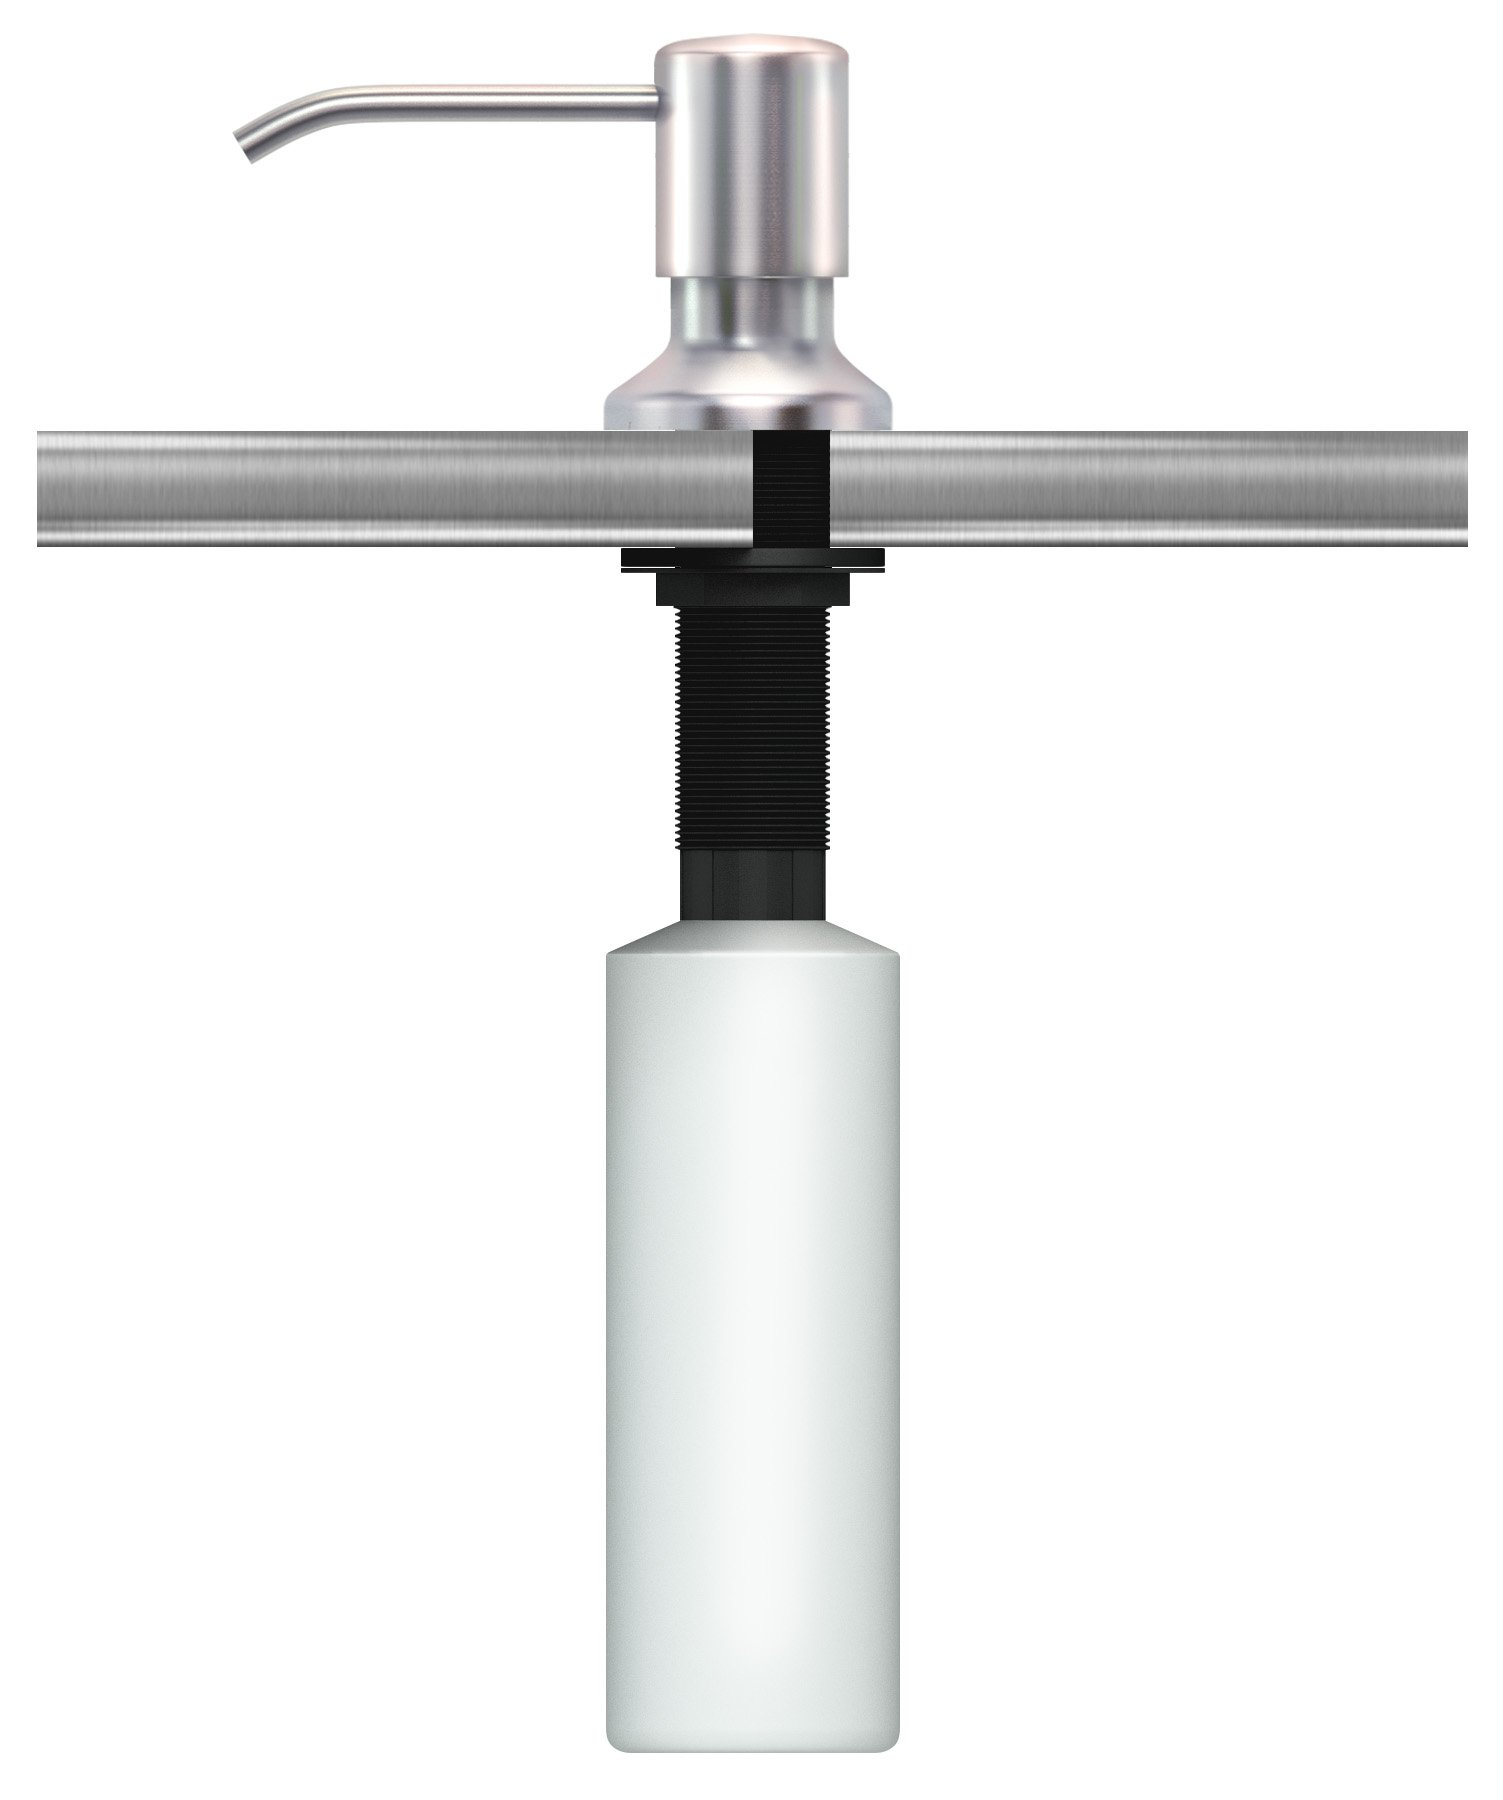 Ultimate Kitchen Stainless Steel Sink Soap Dispenser - Model SSD3 (Satin) - Large Capacity 17 OZ Bottle - Easy Installation (Video Guide Included) - 5 Yr Replacement Warranty by Ultimate Kitchen (Image #3)